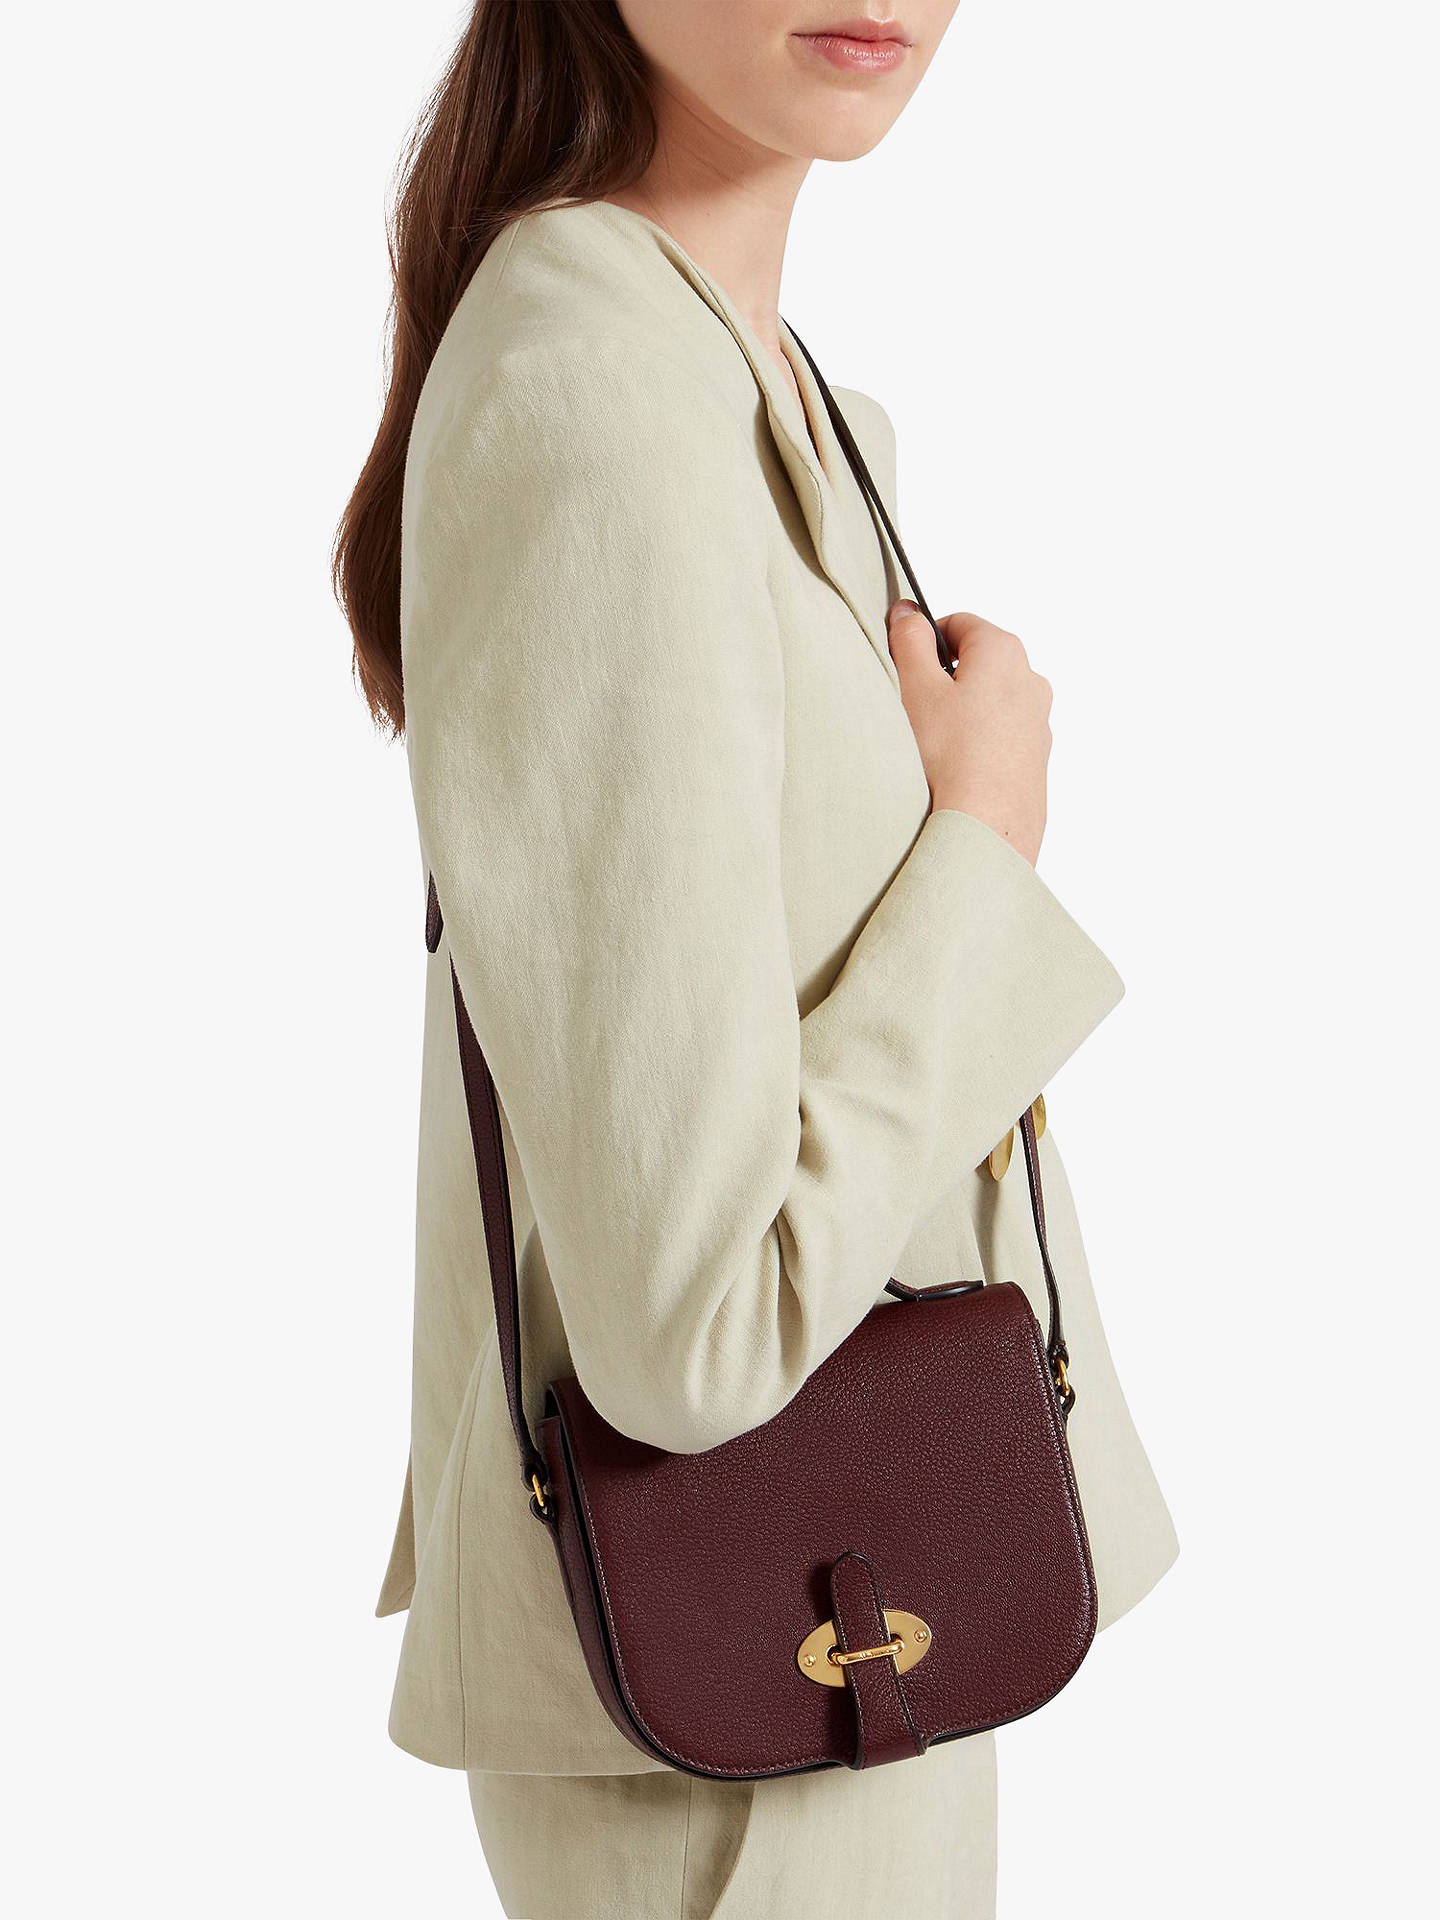 ... BuyMulberry Small Tenby Goat Textured Leather Satchel Bag, Burgundy  Online at johnlewis.com ... 44310cd74e